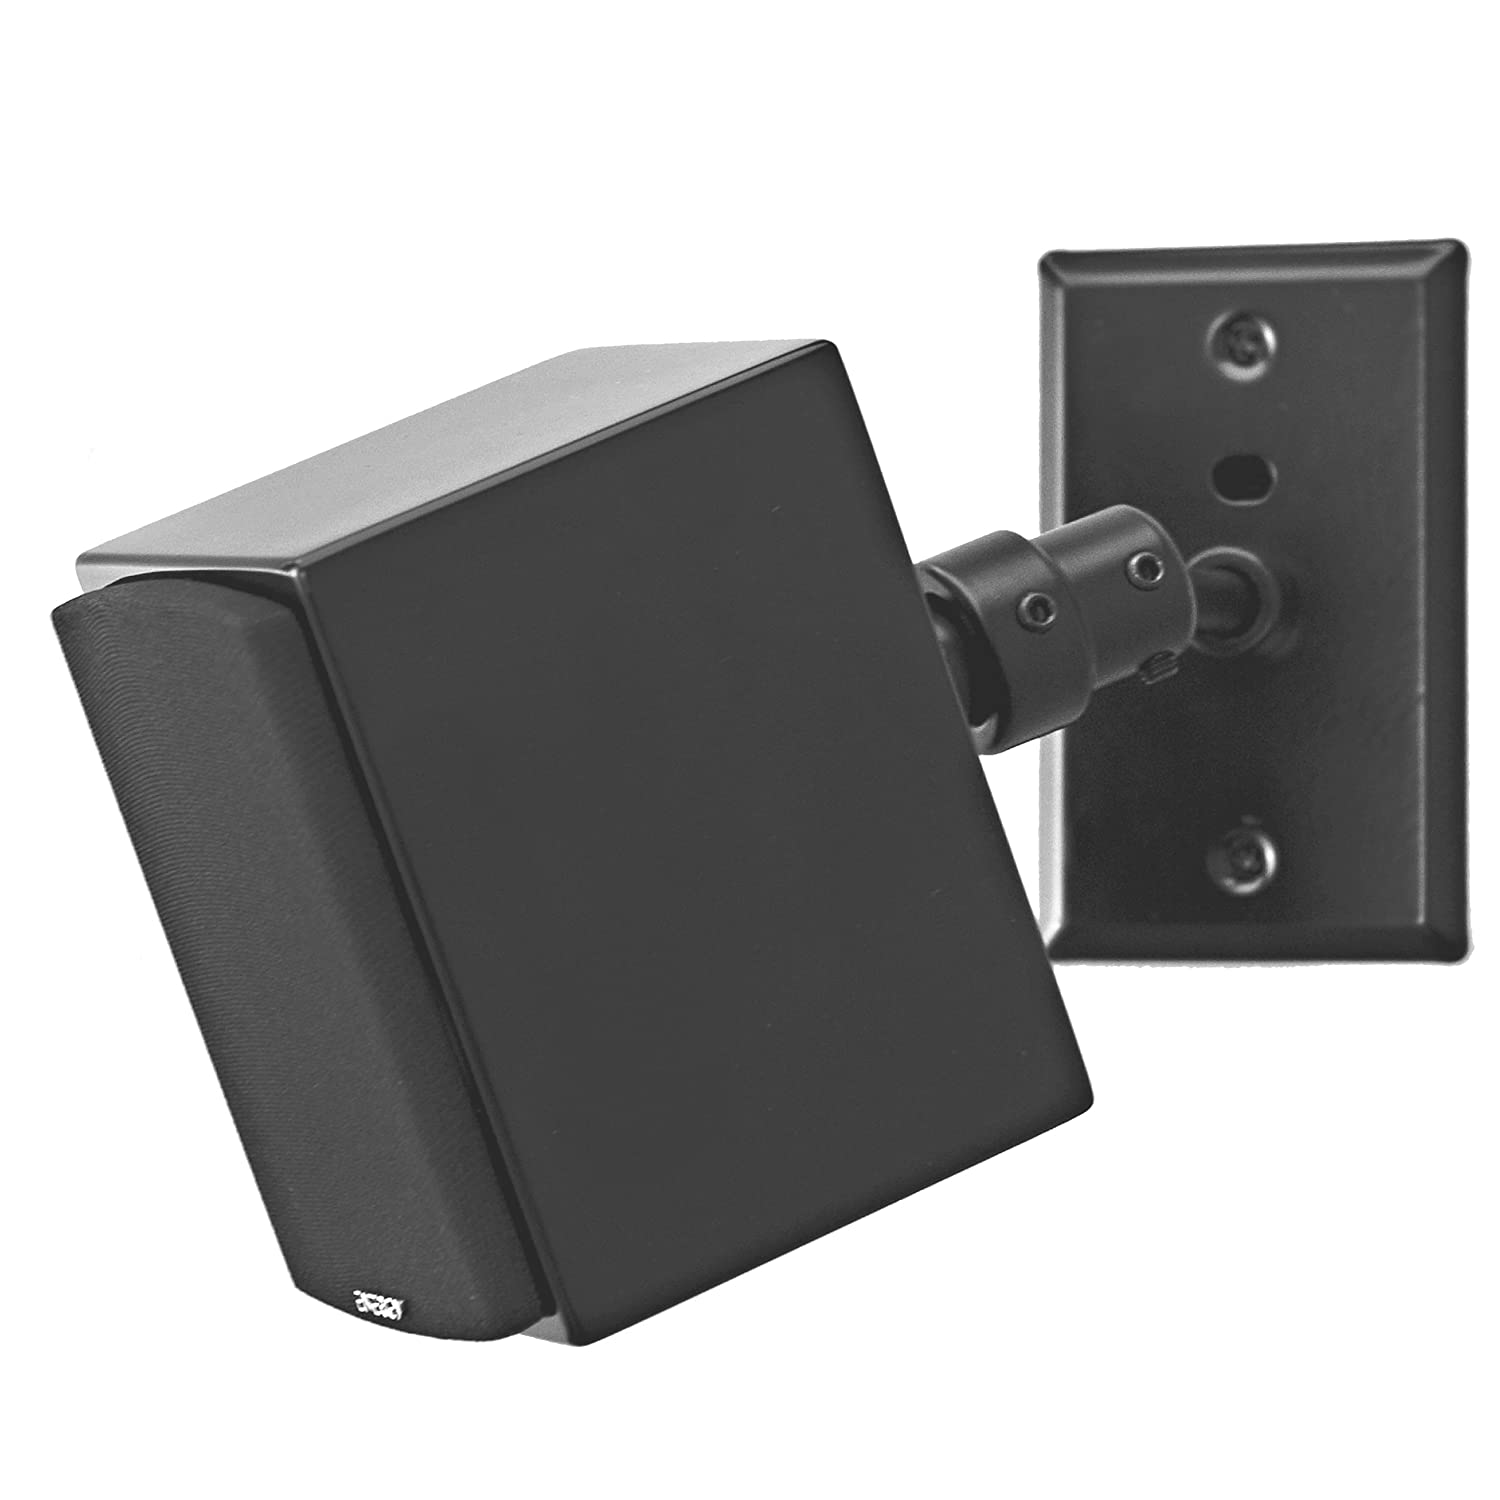 Avs Forum Home Theater Discussions And Reviews Speaker